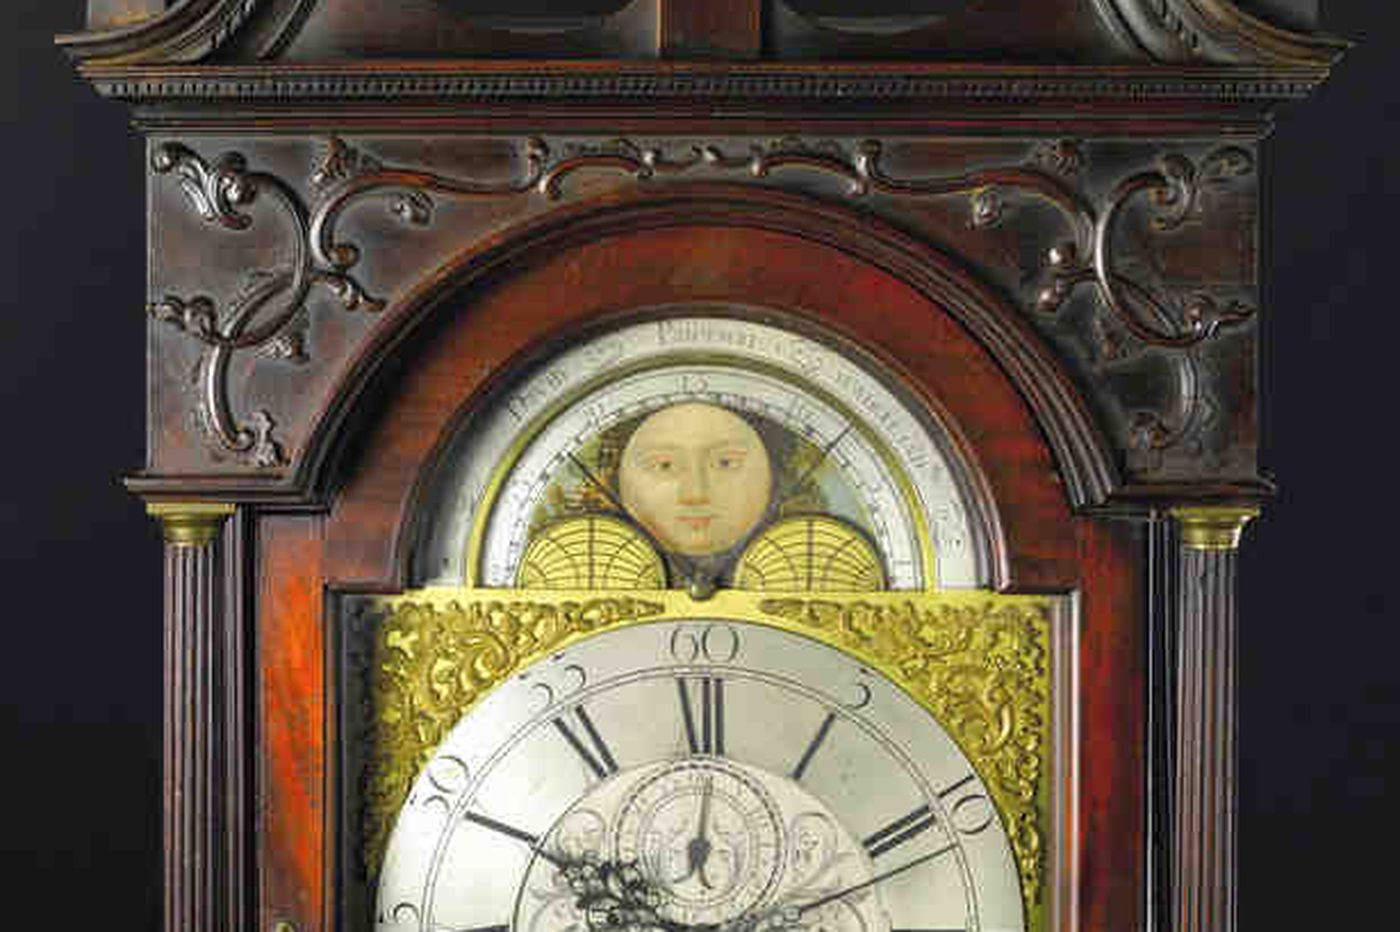 Antiques: The time is now for 18th-century clocks